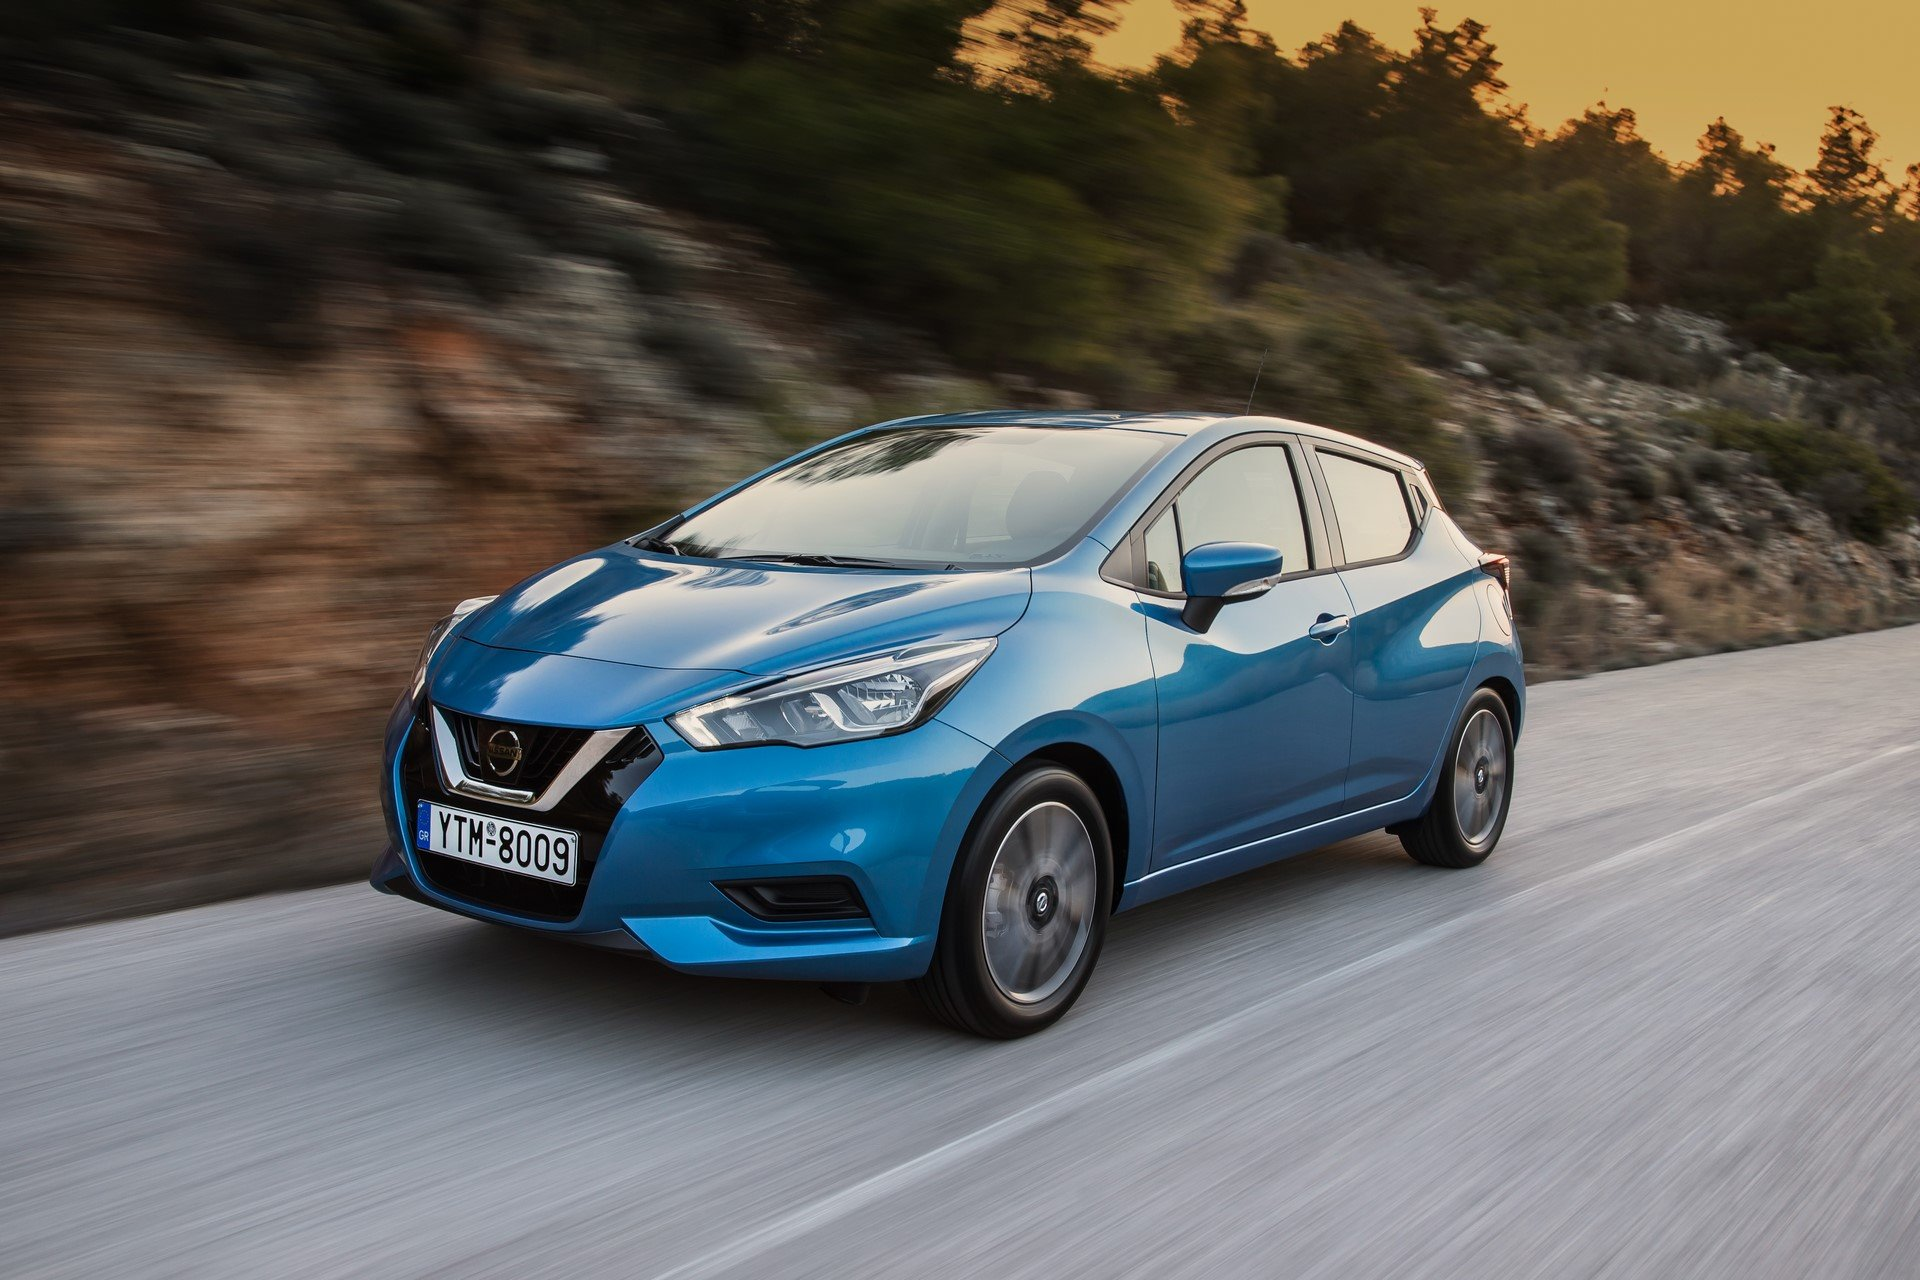 Nissan Micra 2019 Greek (49)